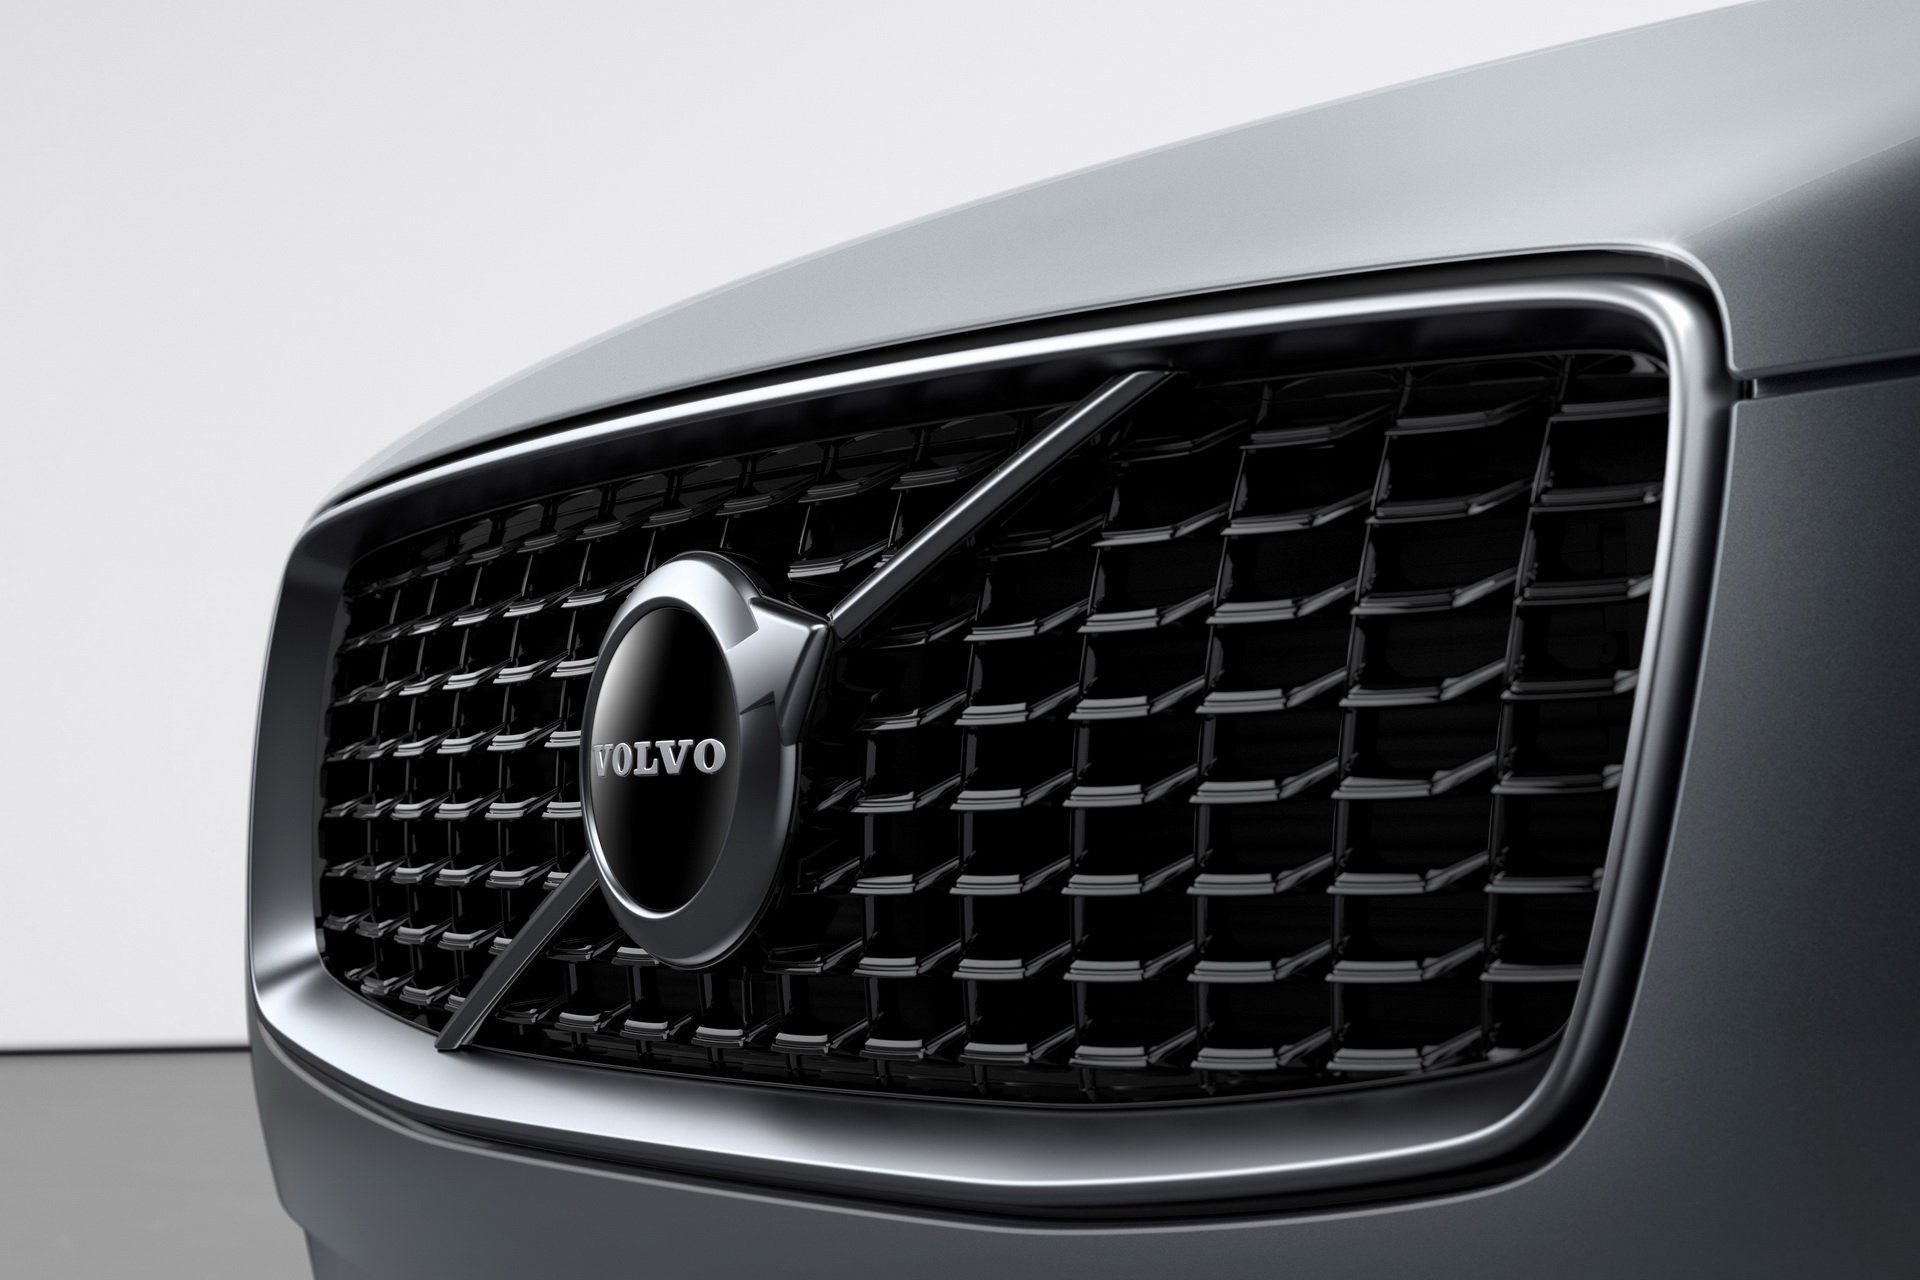 2020 Volvo XC90 R-Design T8 Plug-in Hybrid (Color: Thunder Grey) Grill Wallpapers (9)